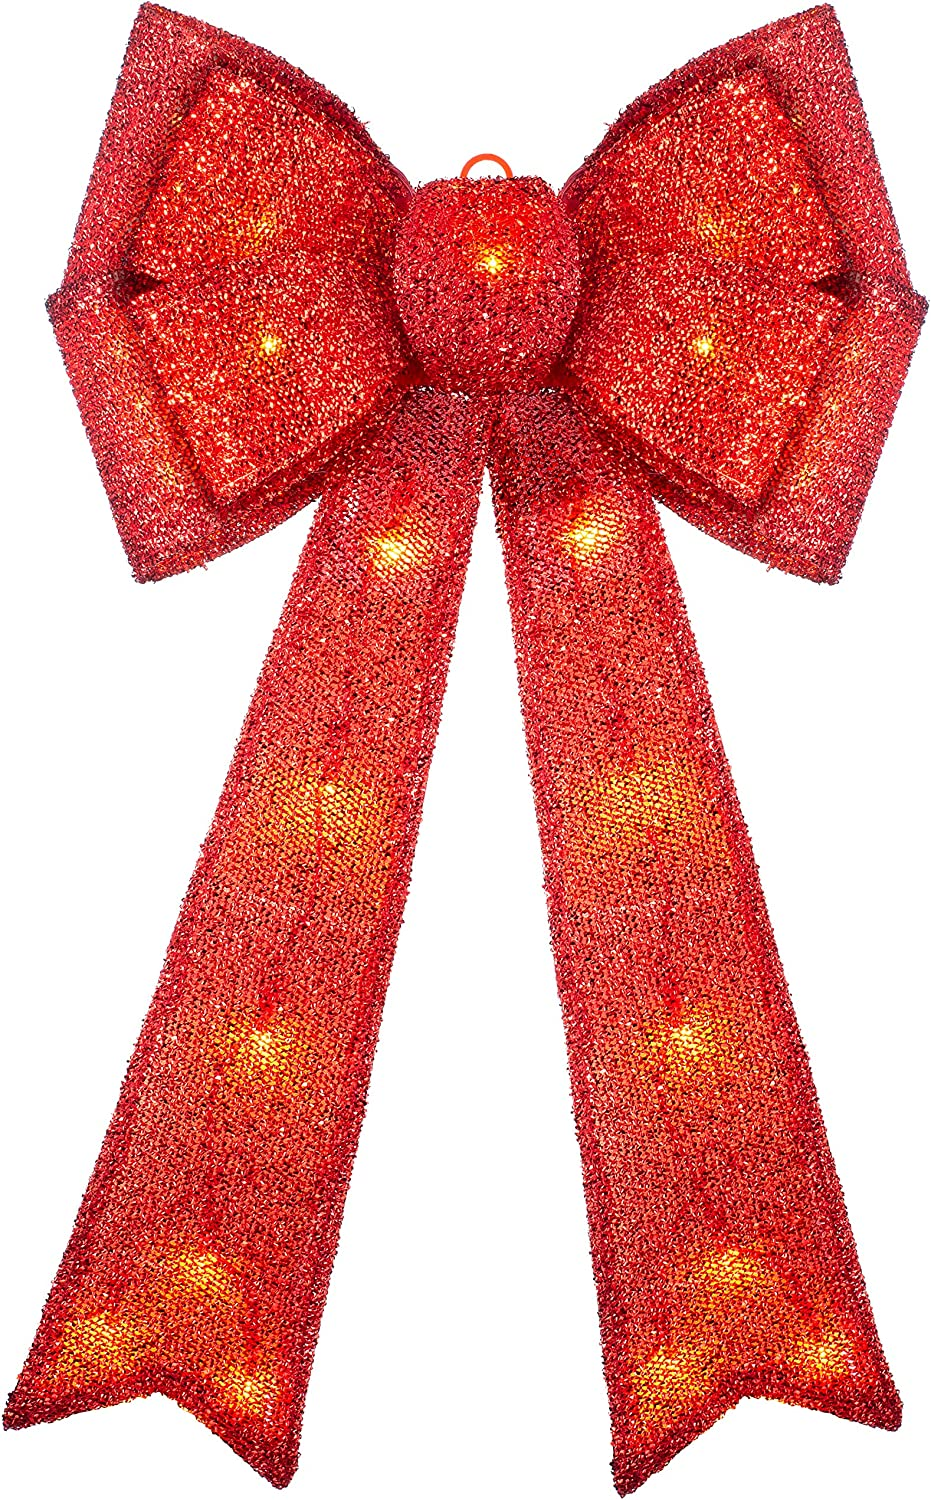 1cm Multi-Colour WeRChristmas Large Christmas Bow Decoration with 25 Chasing Warm LED Lights